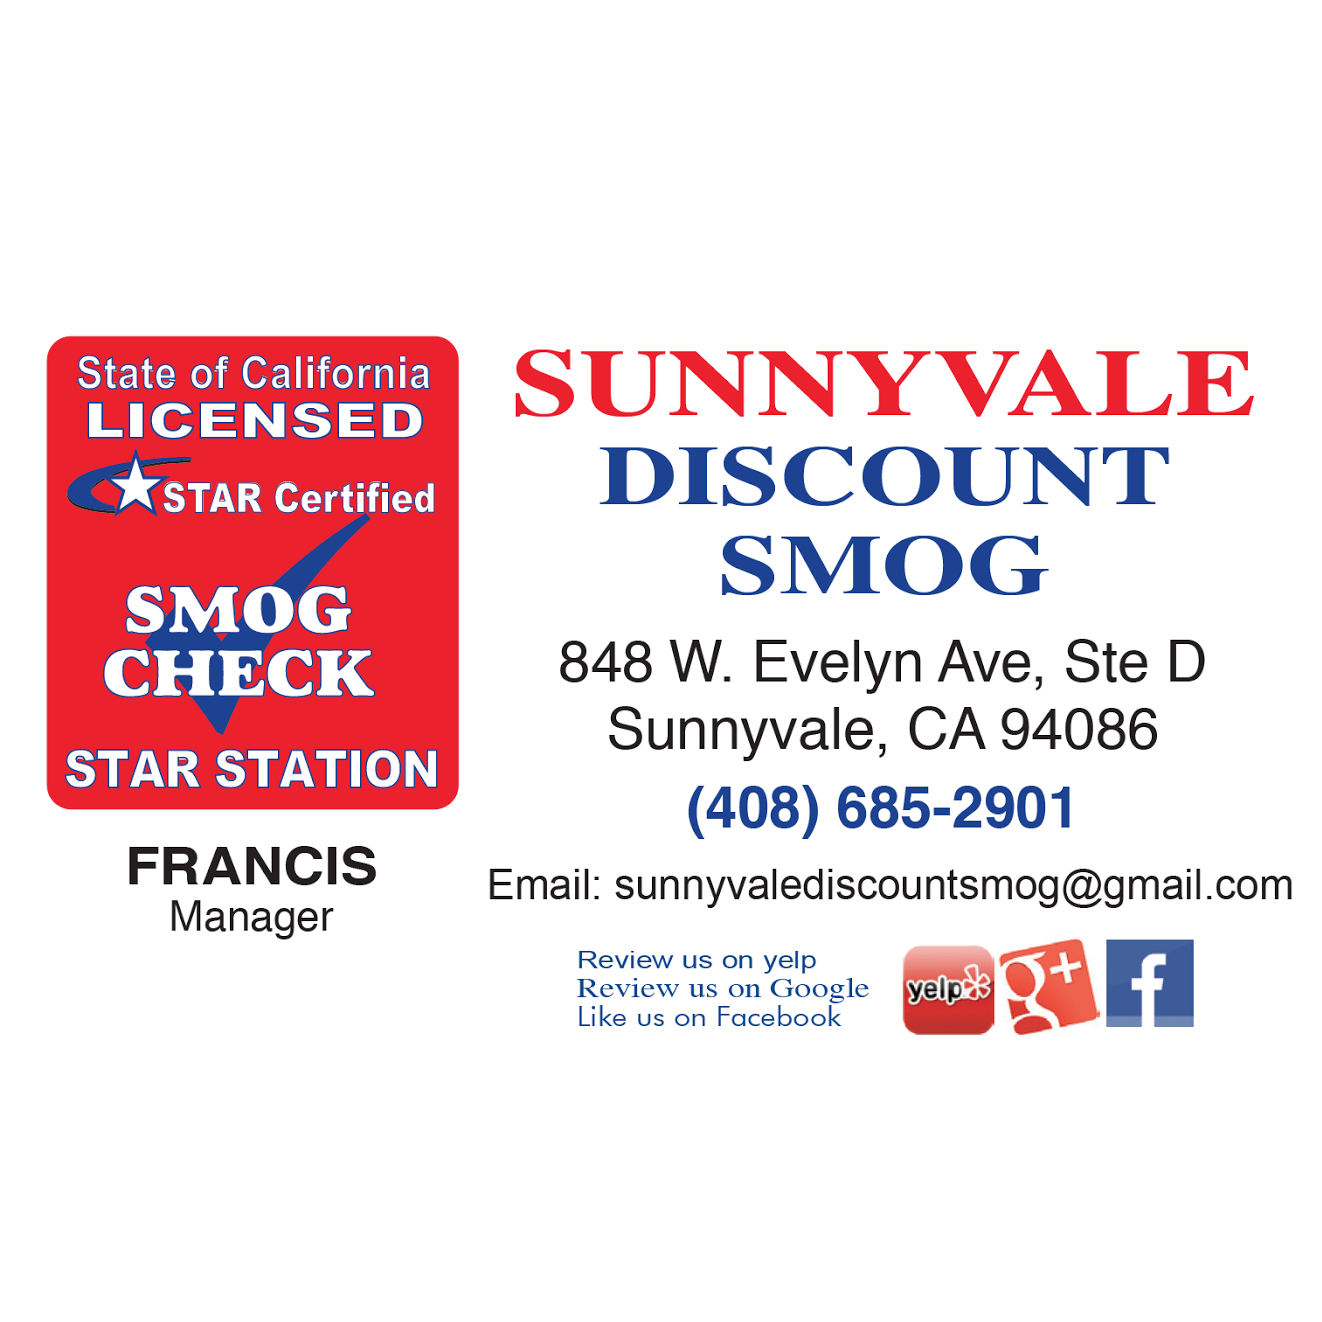 Sunnyvale Discount Smog - Star Certified Station